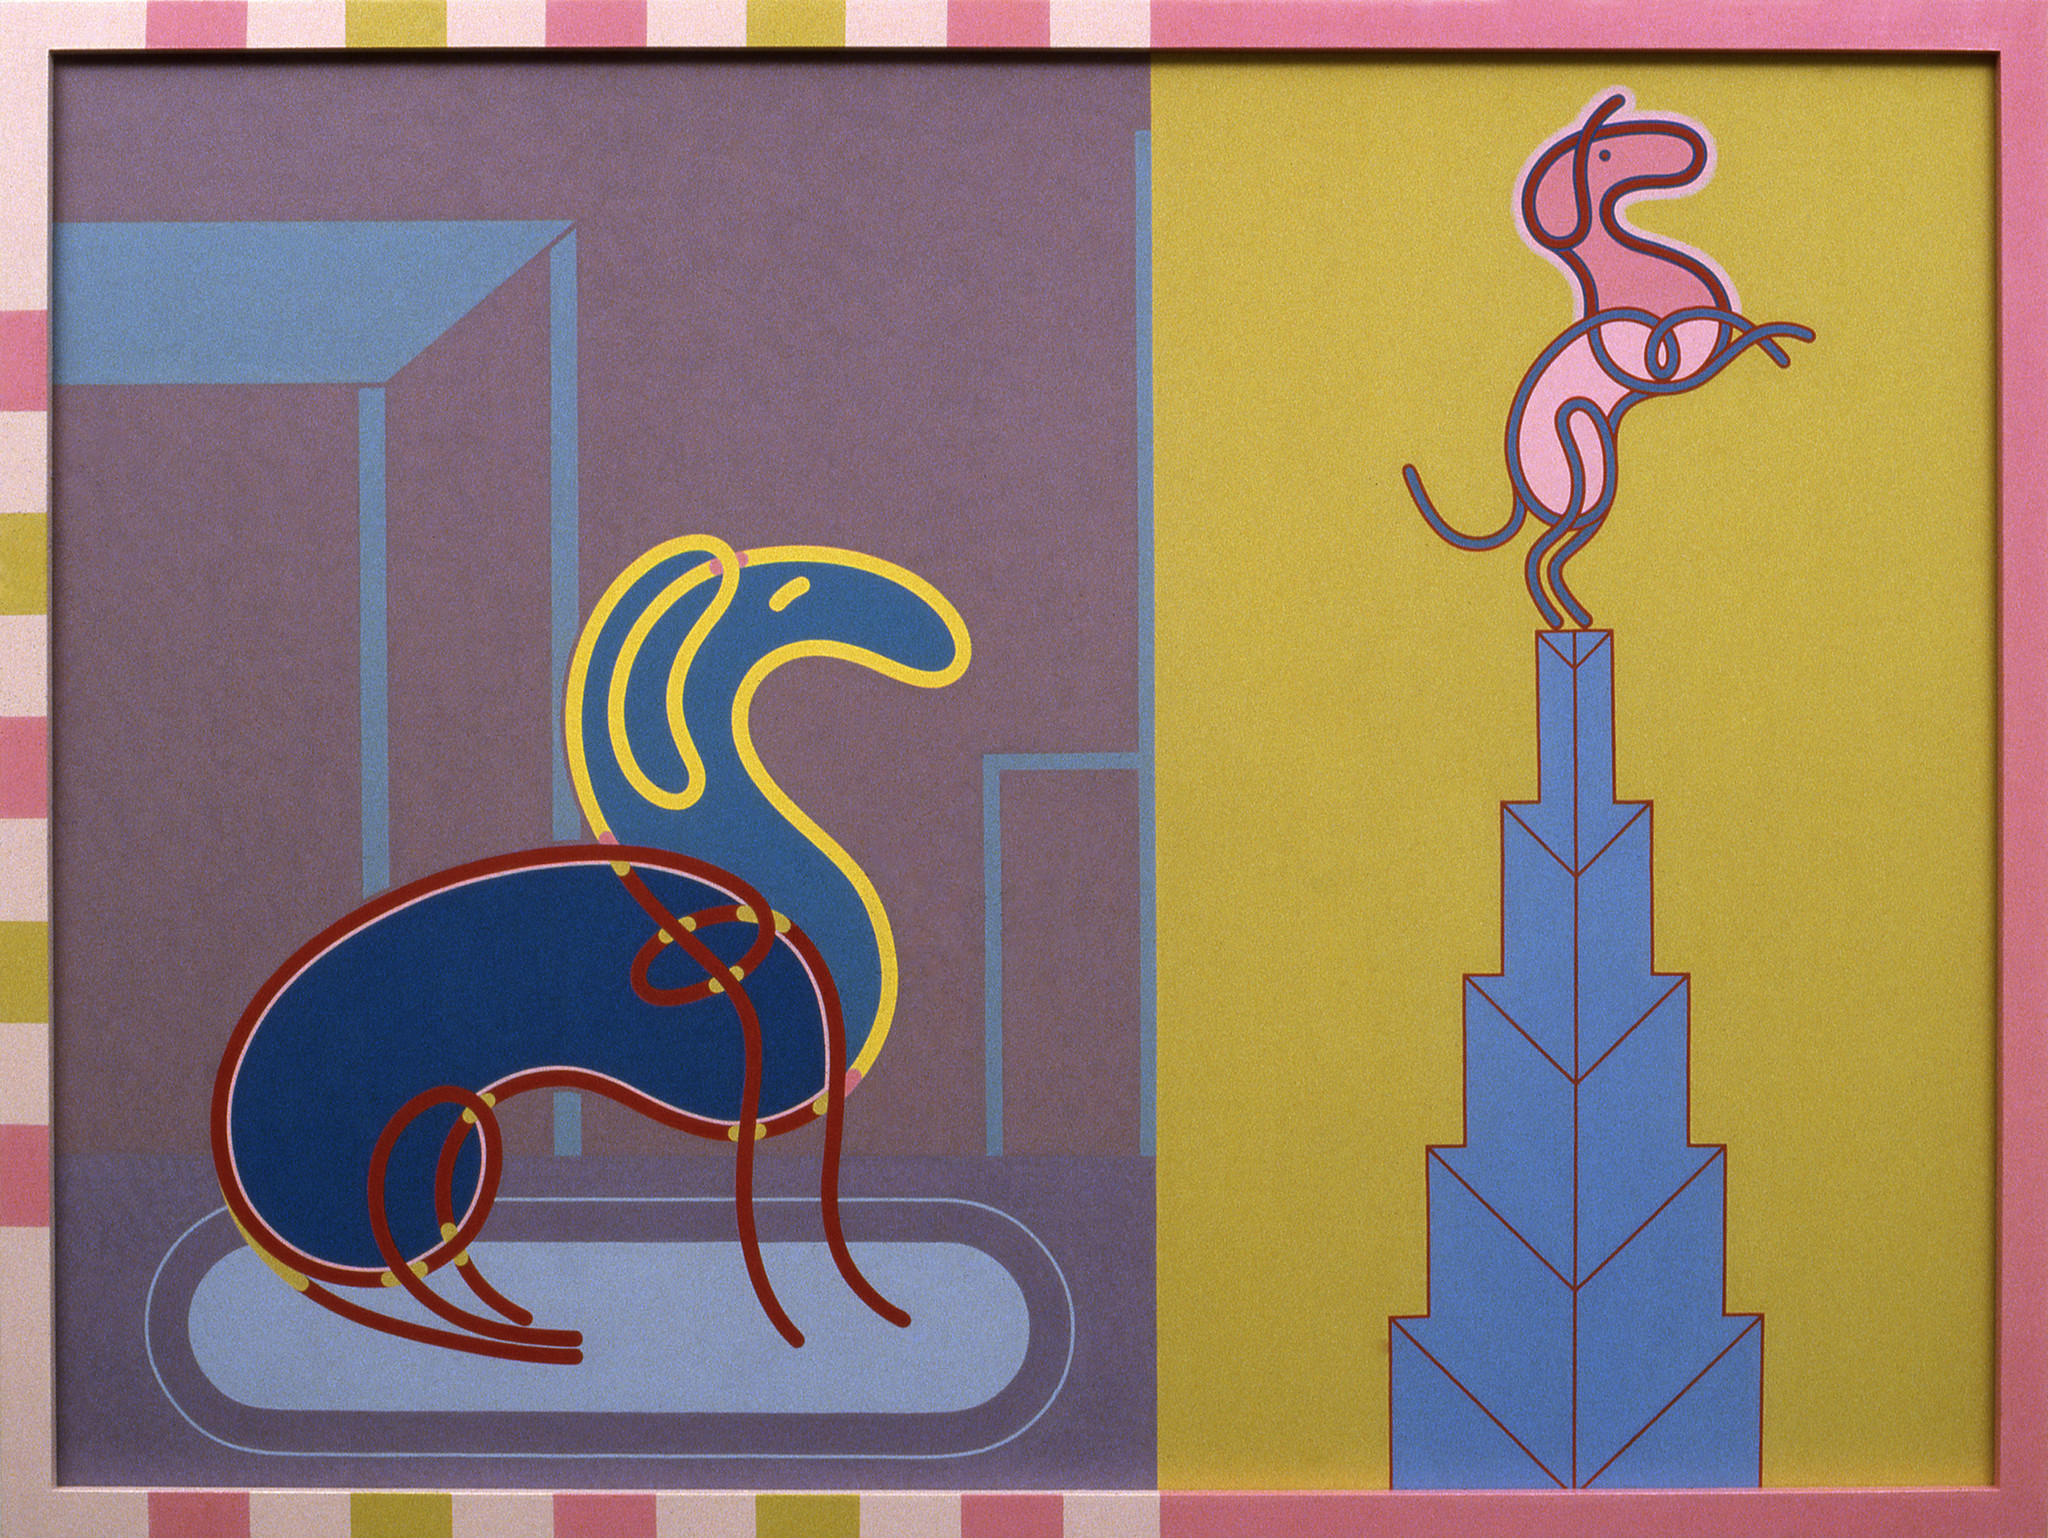 """Barbara Rossi's """"Dog Gone Heads or Tails (Dog-Matic),"""" 1982, acrylic on Masonite panel in artist's frame, 36 inches by 48 inches by 2 inches"""